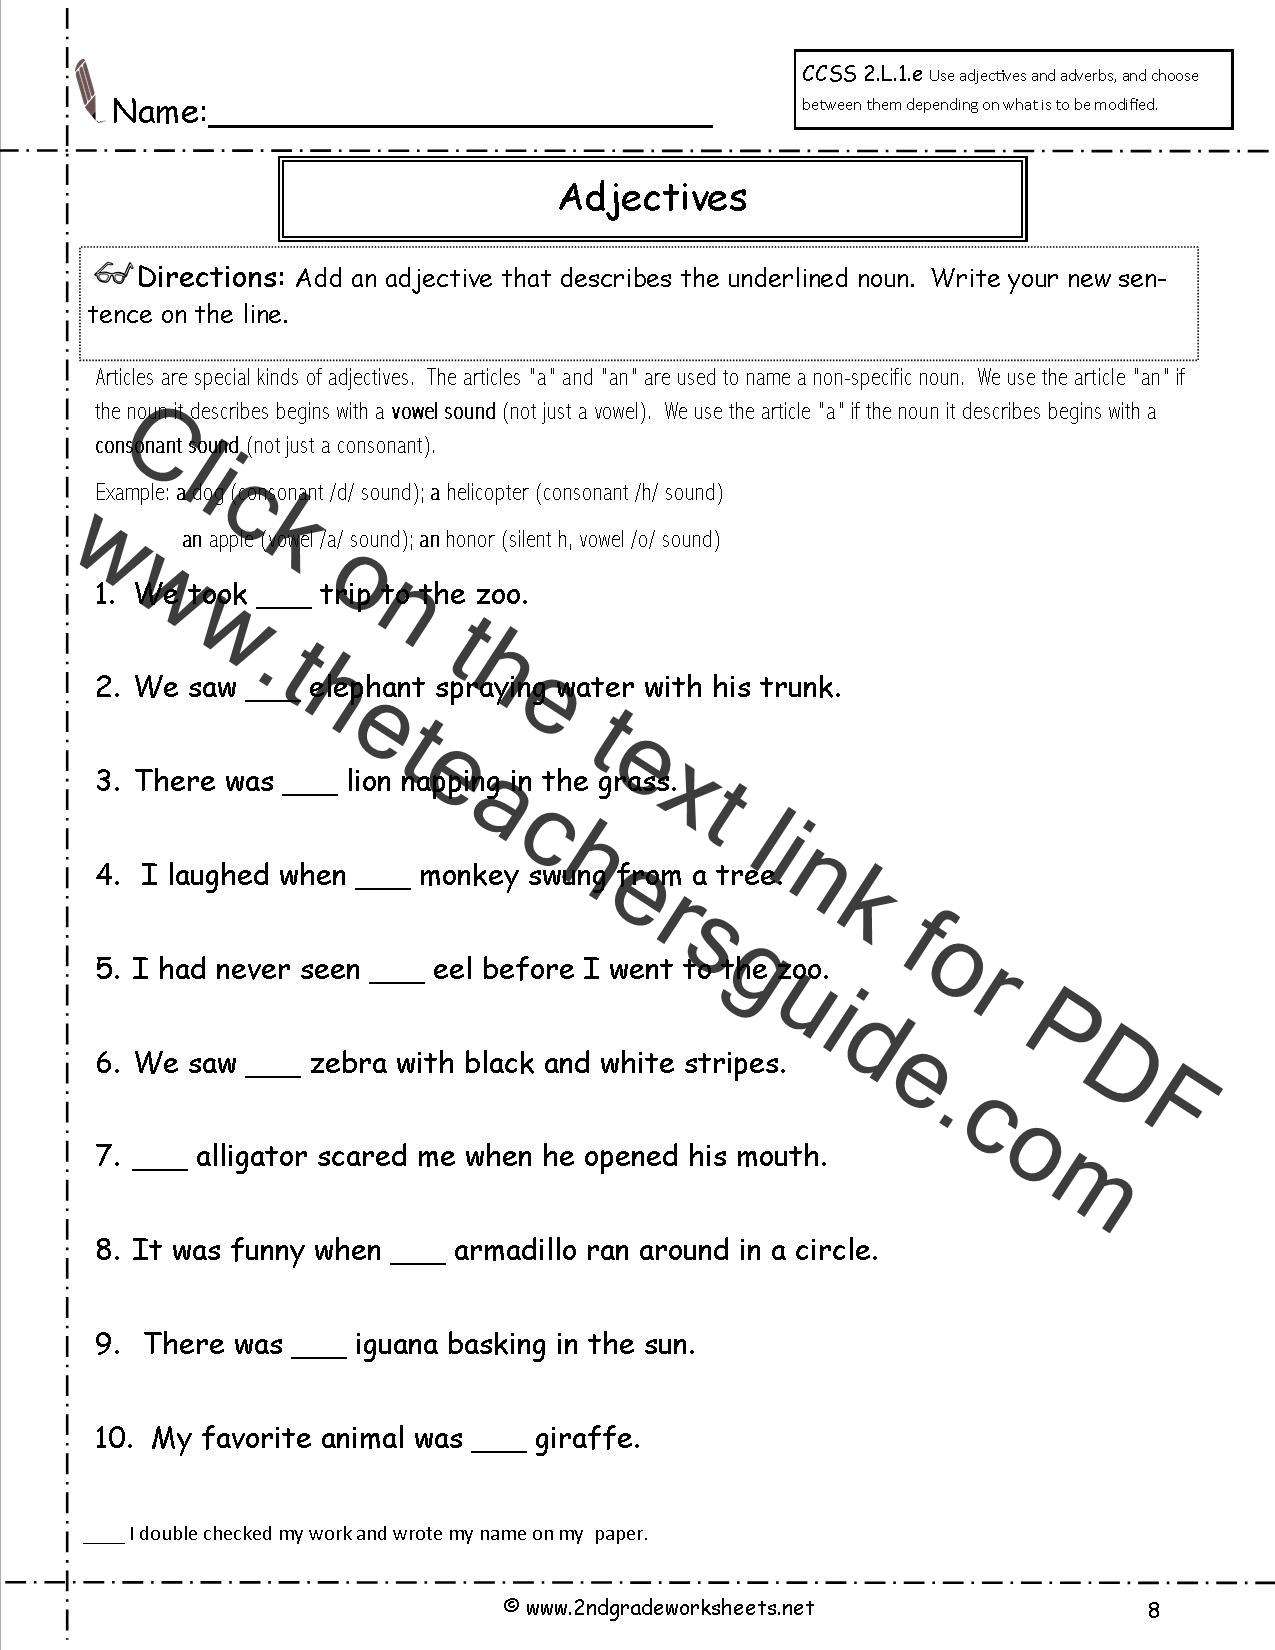 photograph regarding Printable Noun Worksheets named No cost Language/Grammar Worksheets and Printouts